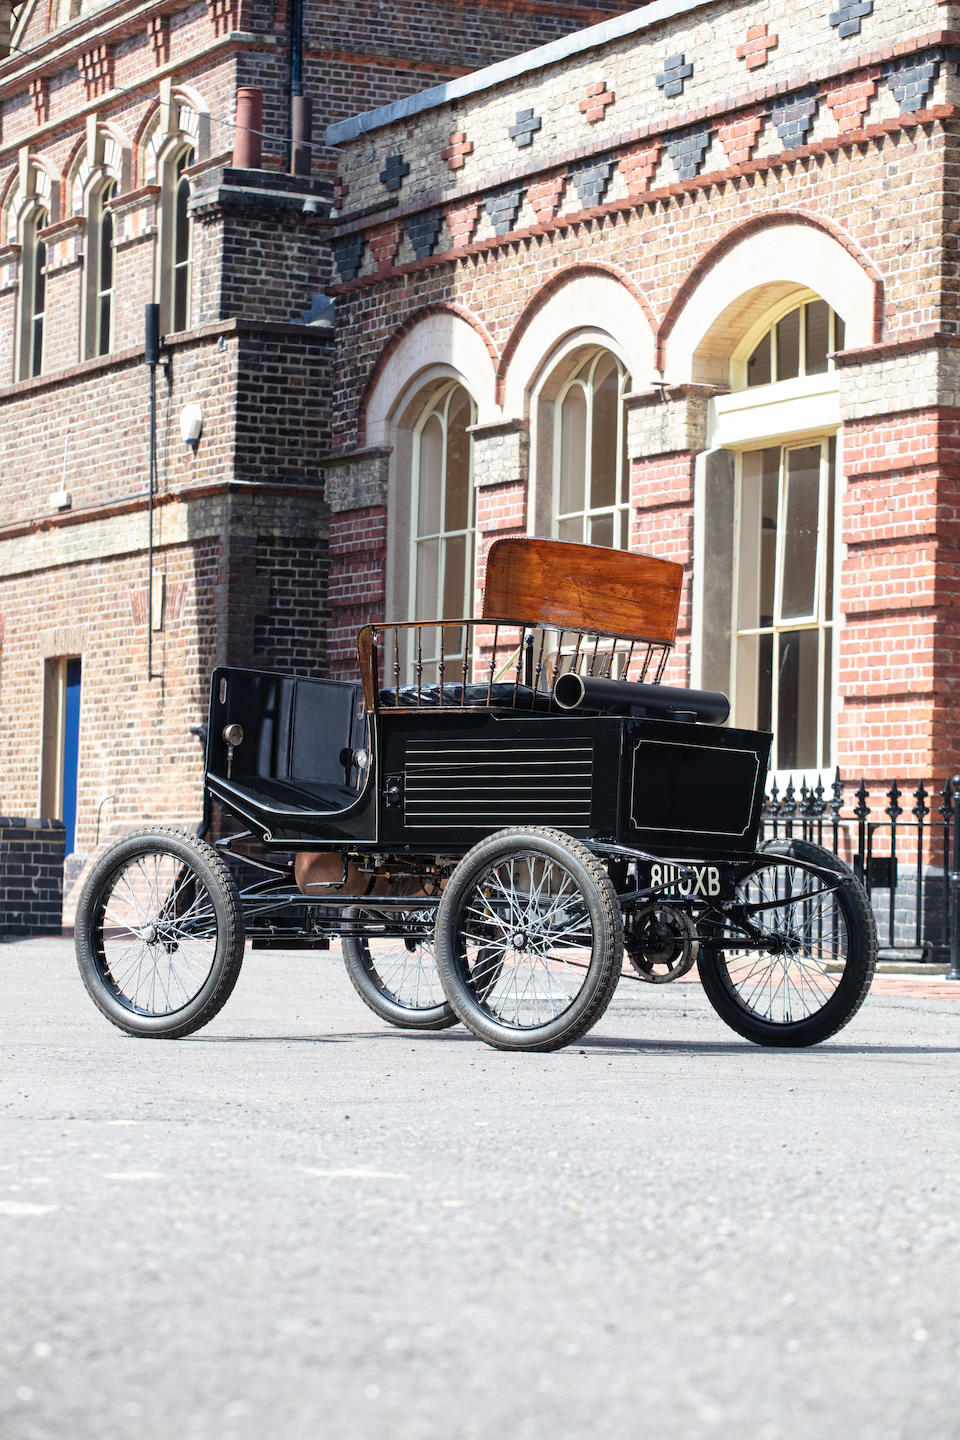 1900 Locomobile Steamer Type 2 5½hp Spindle Seat Runabout  Chassis no. 29